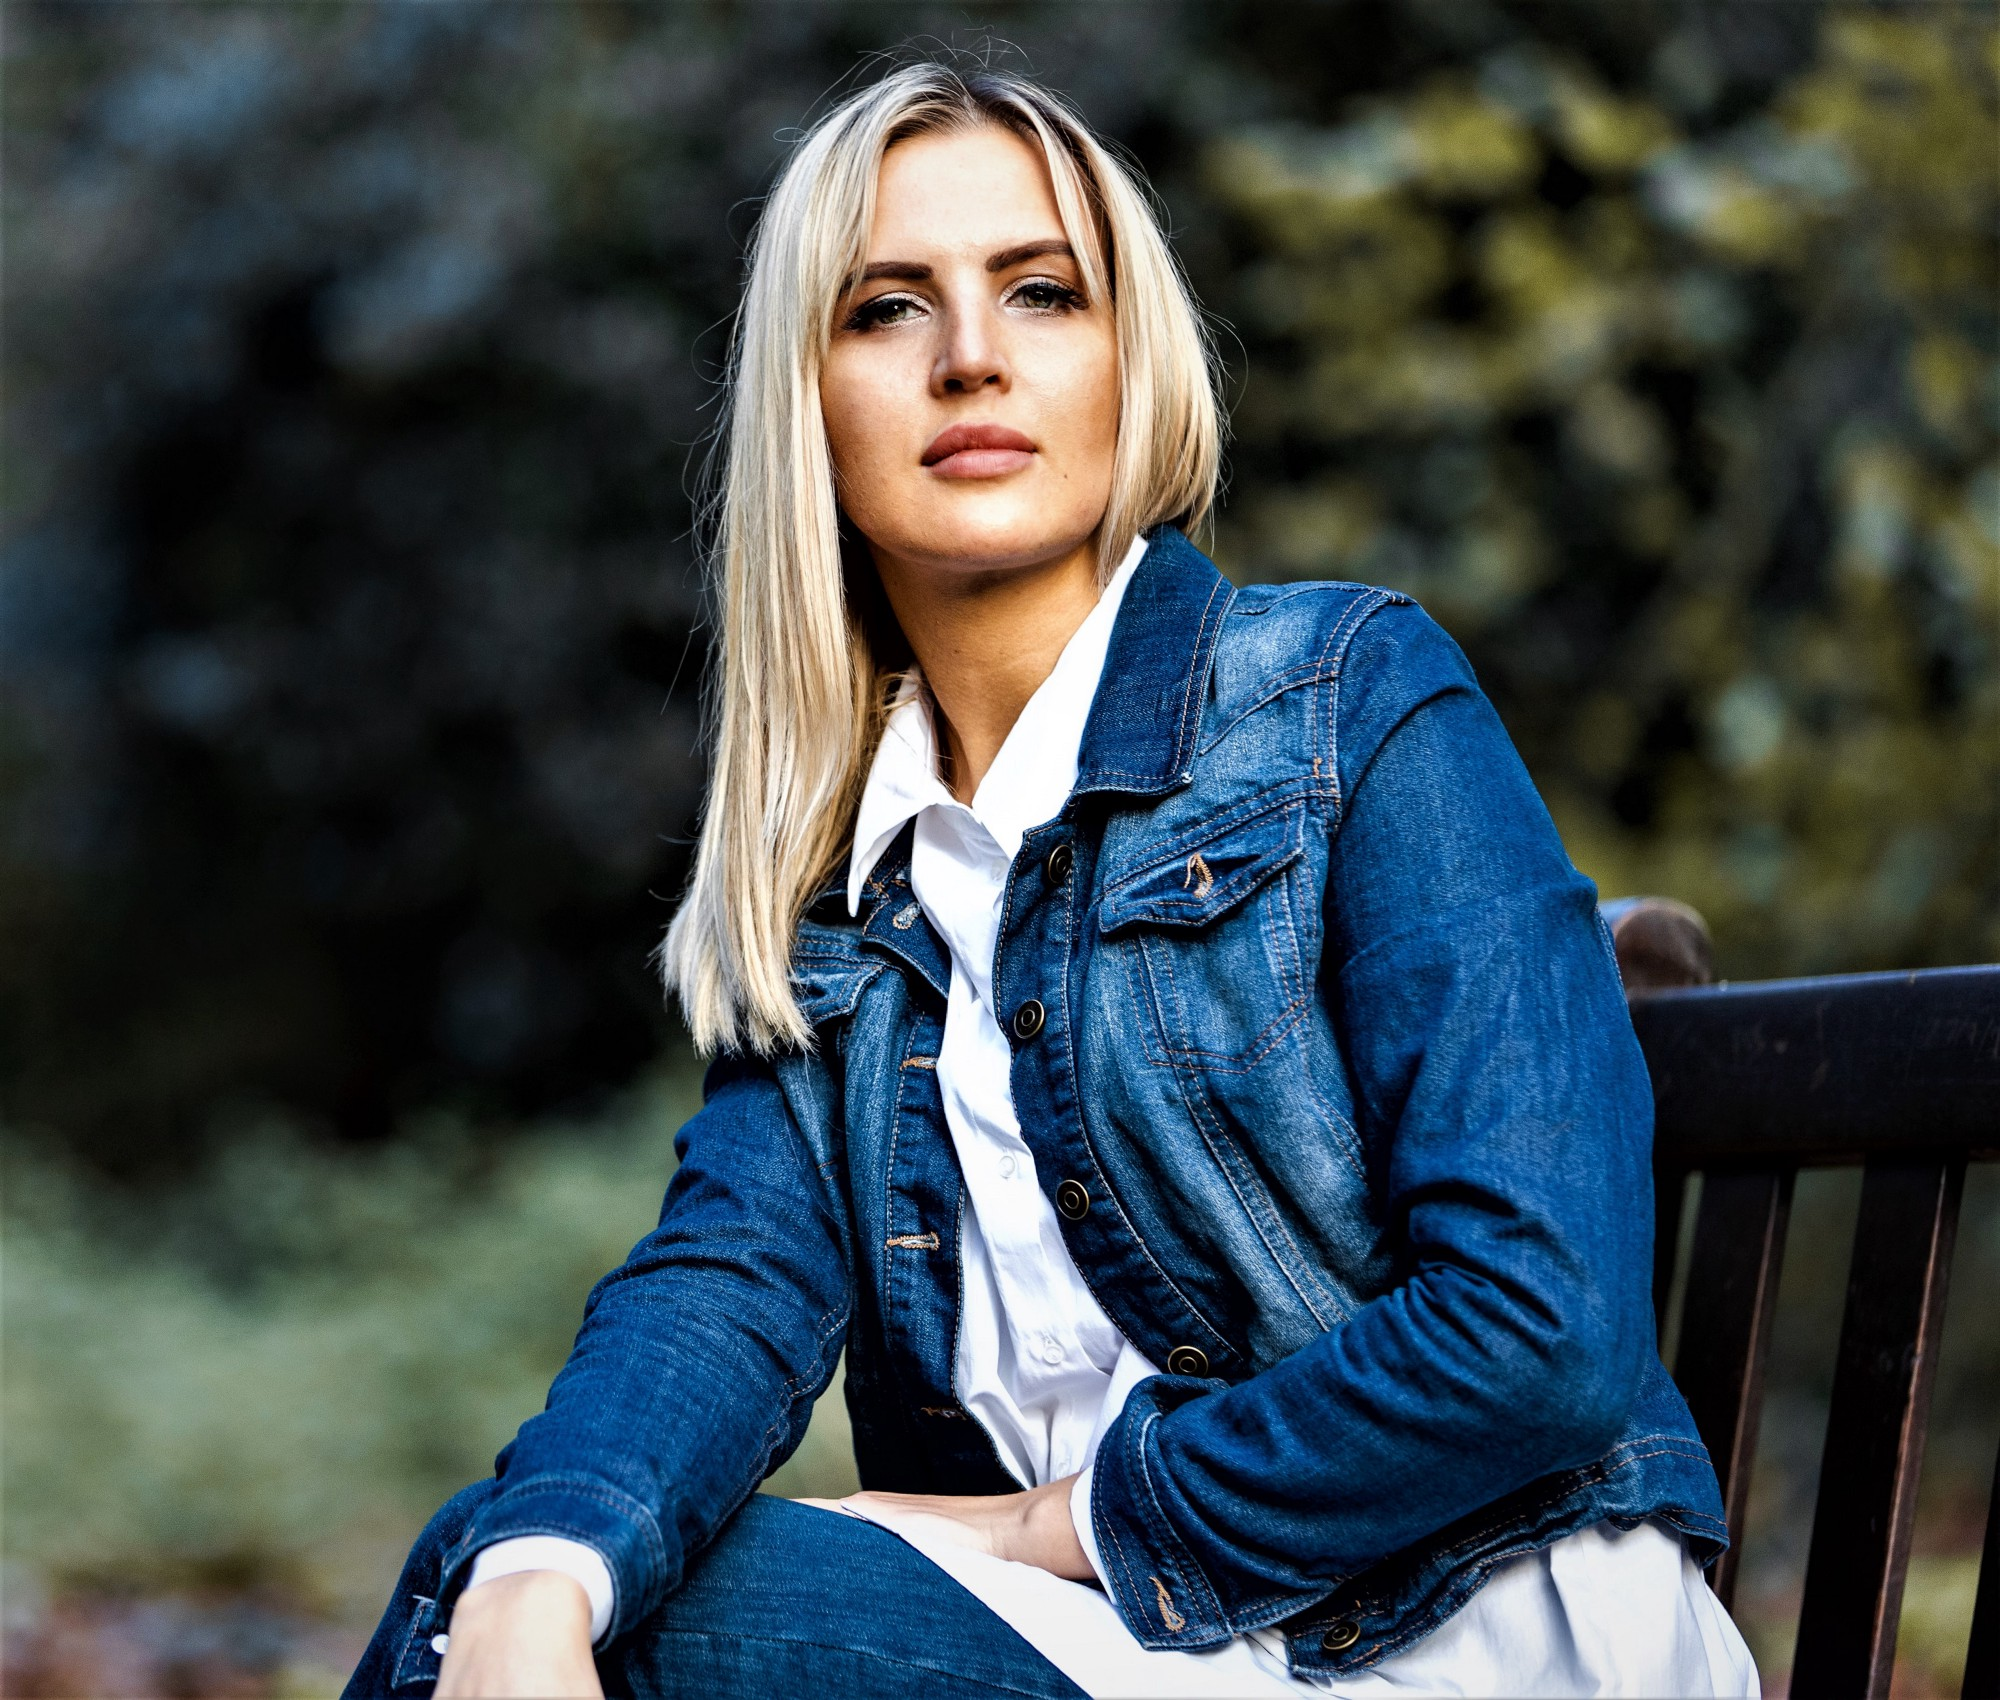 girl with long blonde hair wearing long sleeve blue denim jacket and white shirt with foliage background